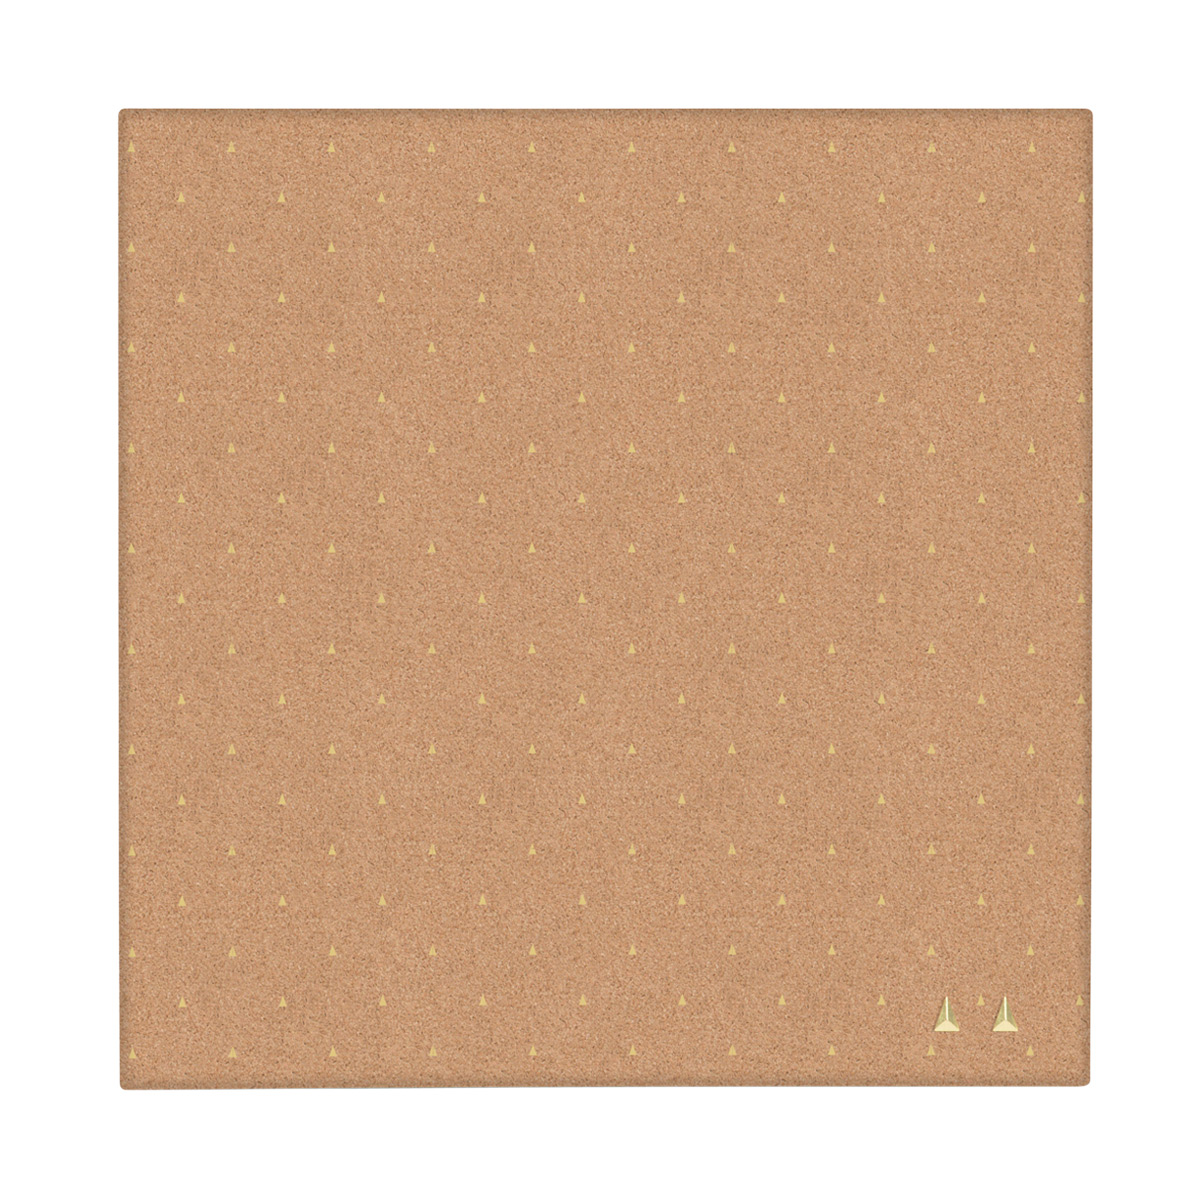 Cork Board with Gold Arrows